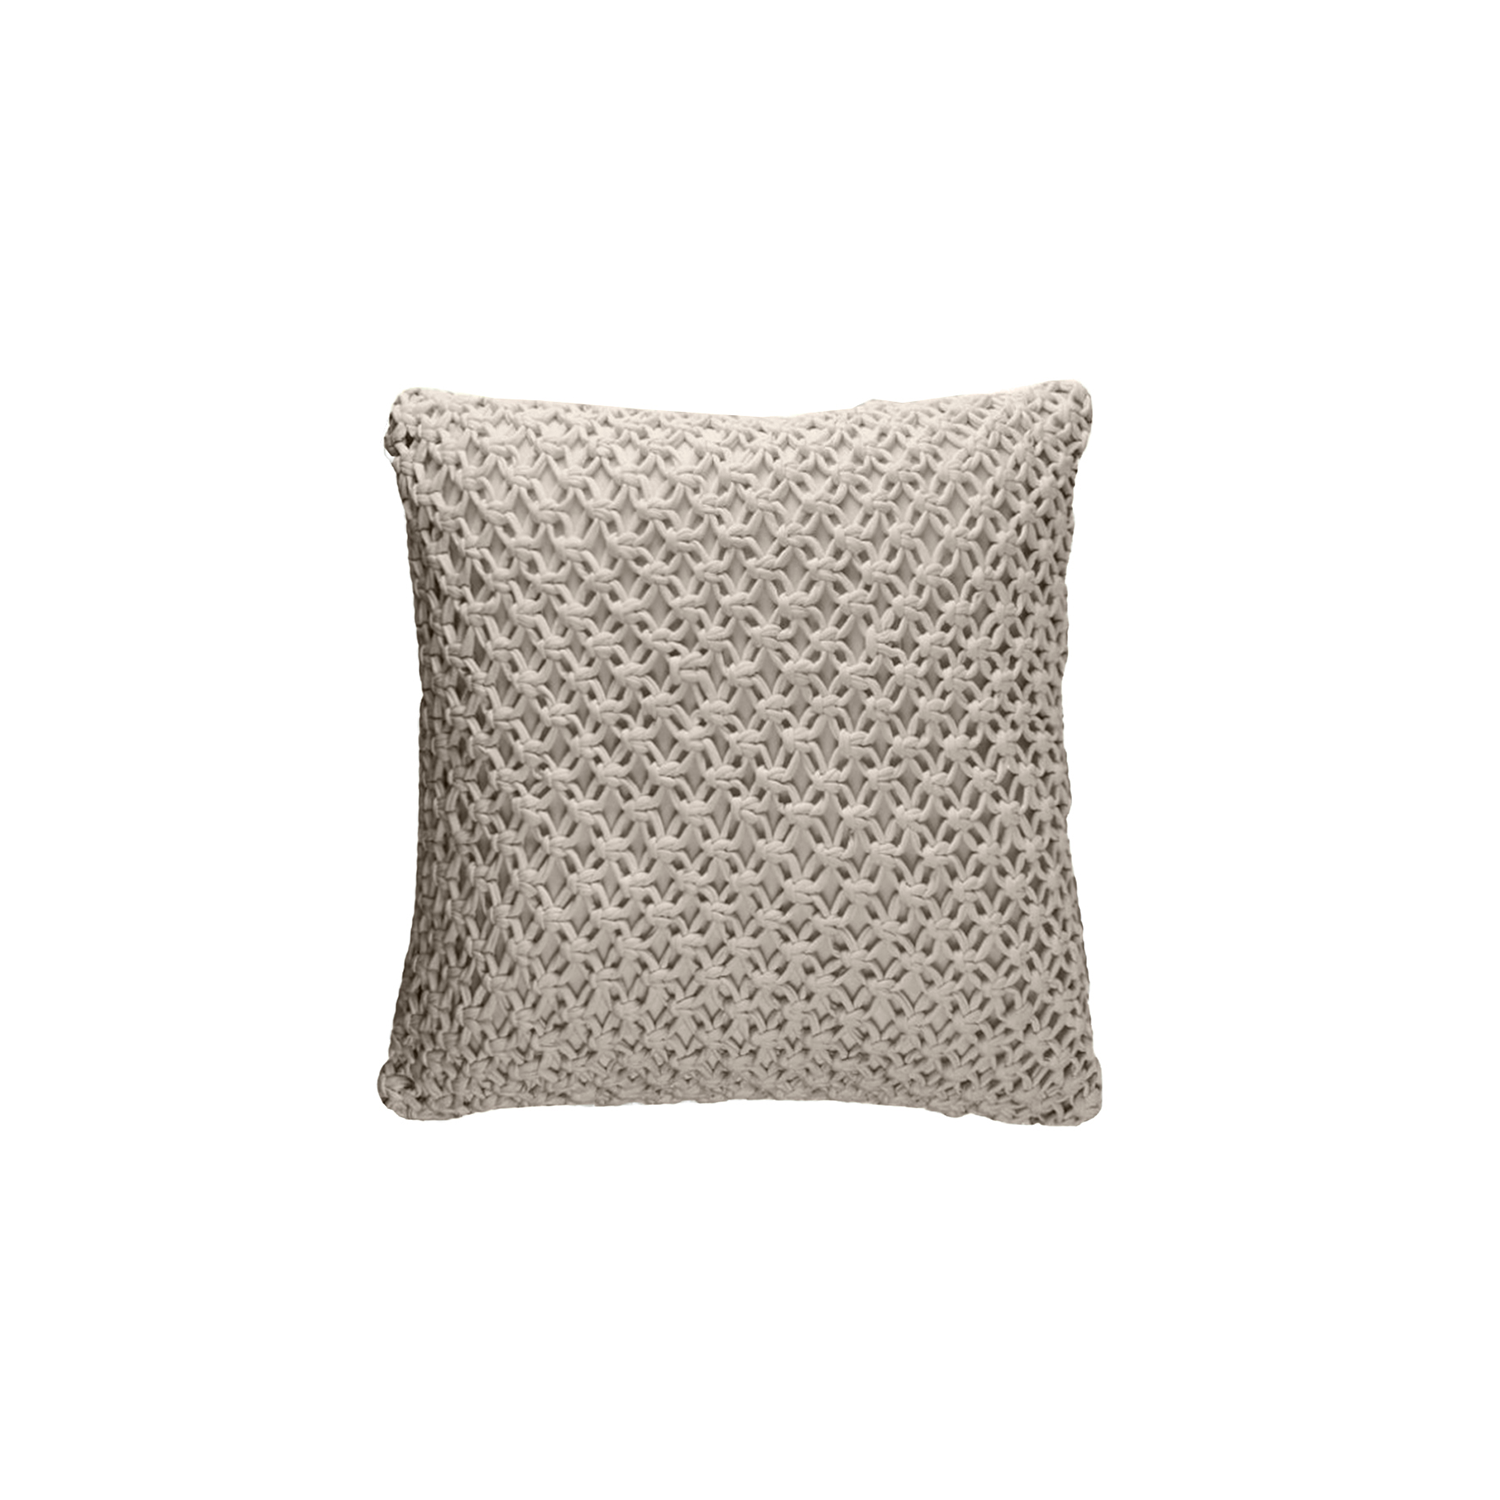 Macrame Knitted Cotton Cushion Square - The Macrame Line is carefully knitted within a trained community of women that found in their craft a way to provide for their families, each one of these cushions and throws is unique.  Elisa Atheniense Home soft indoors collection is made with natural cotton fibres, eco-friendly, handwoven or elaborated using traditional hand-loom techniques. The use of organic materials brings softness and comfort to the space. This collection combines their mission for responsible sourcing and manufacturing.  The hand woven cotton, washable cushion cover is made in Brazil and the inner cushion is made in the UK. All cushions come with Hollow Fibre filling. European Duck Feathers are optional upon request at an extra cost. Please enquire for more information and see colour chart for reference.    | Matter of Stuff